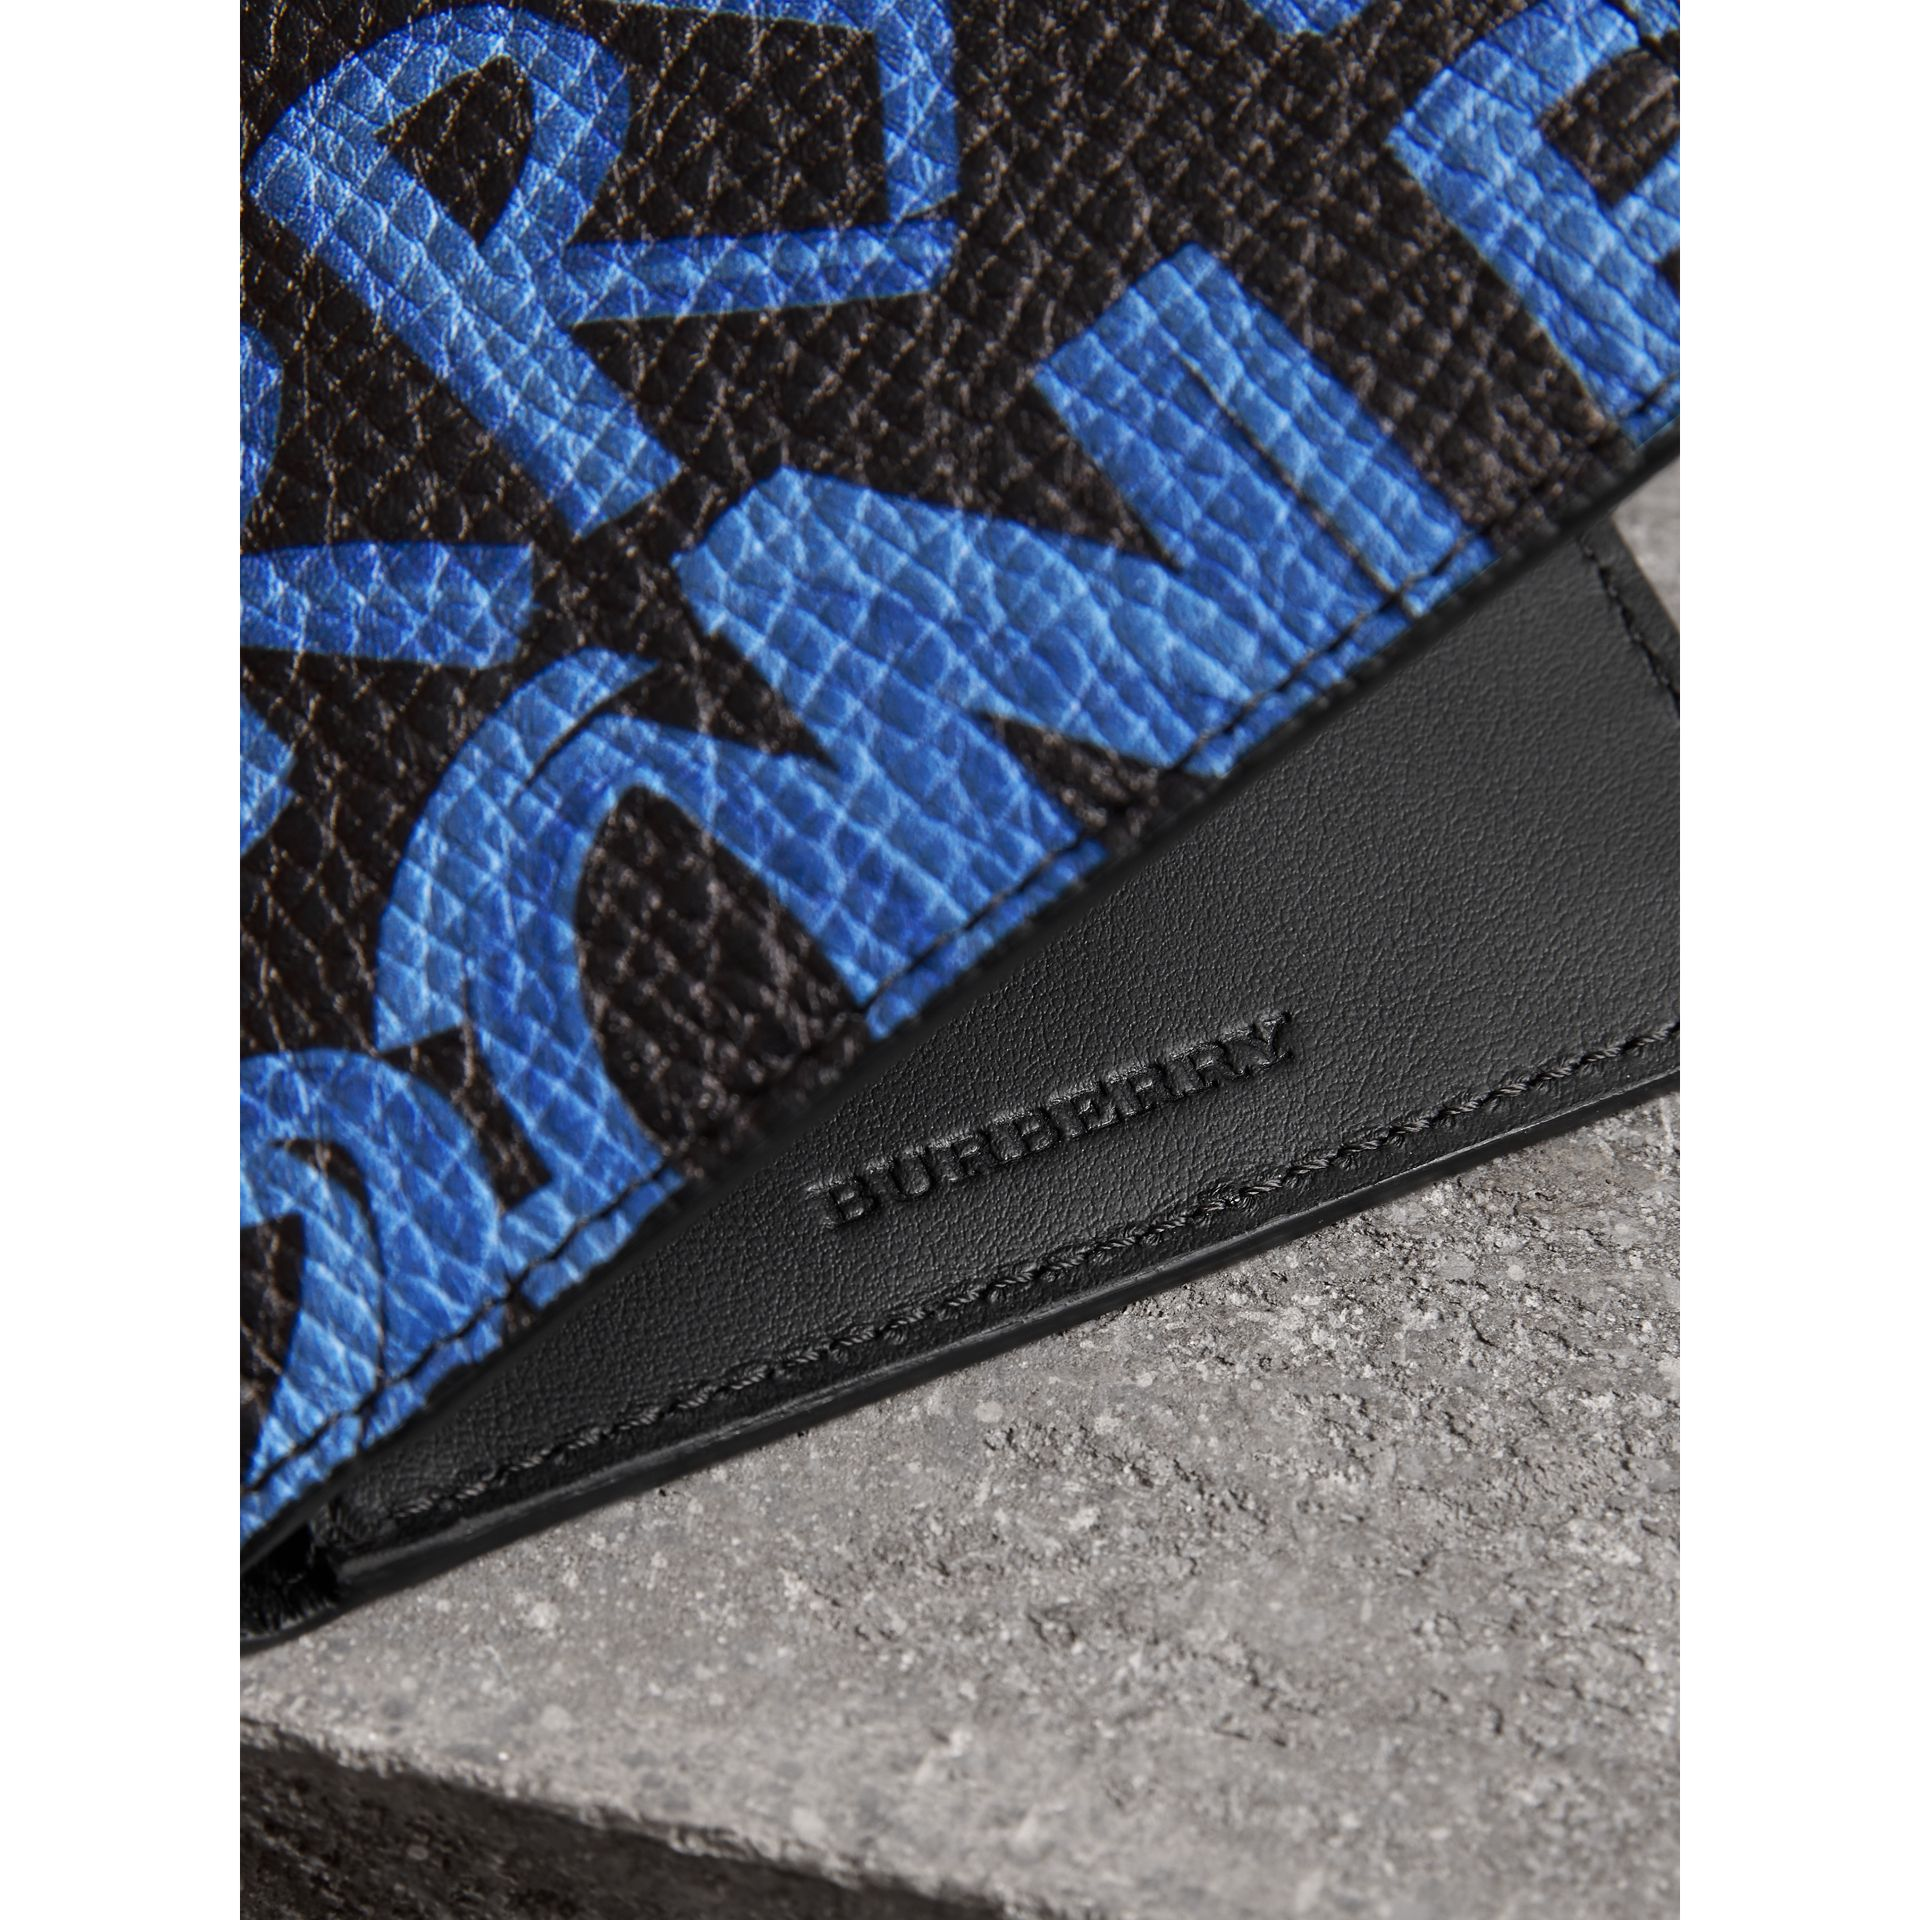 Graffiti Print Leather International Bifold Wallet in Blue/black - Men | Burberry Hong Kong - gallery image 1